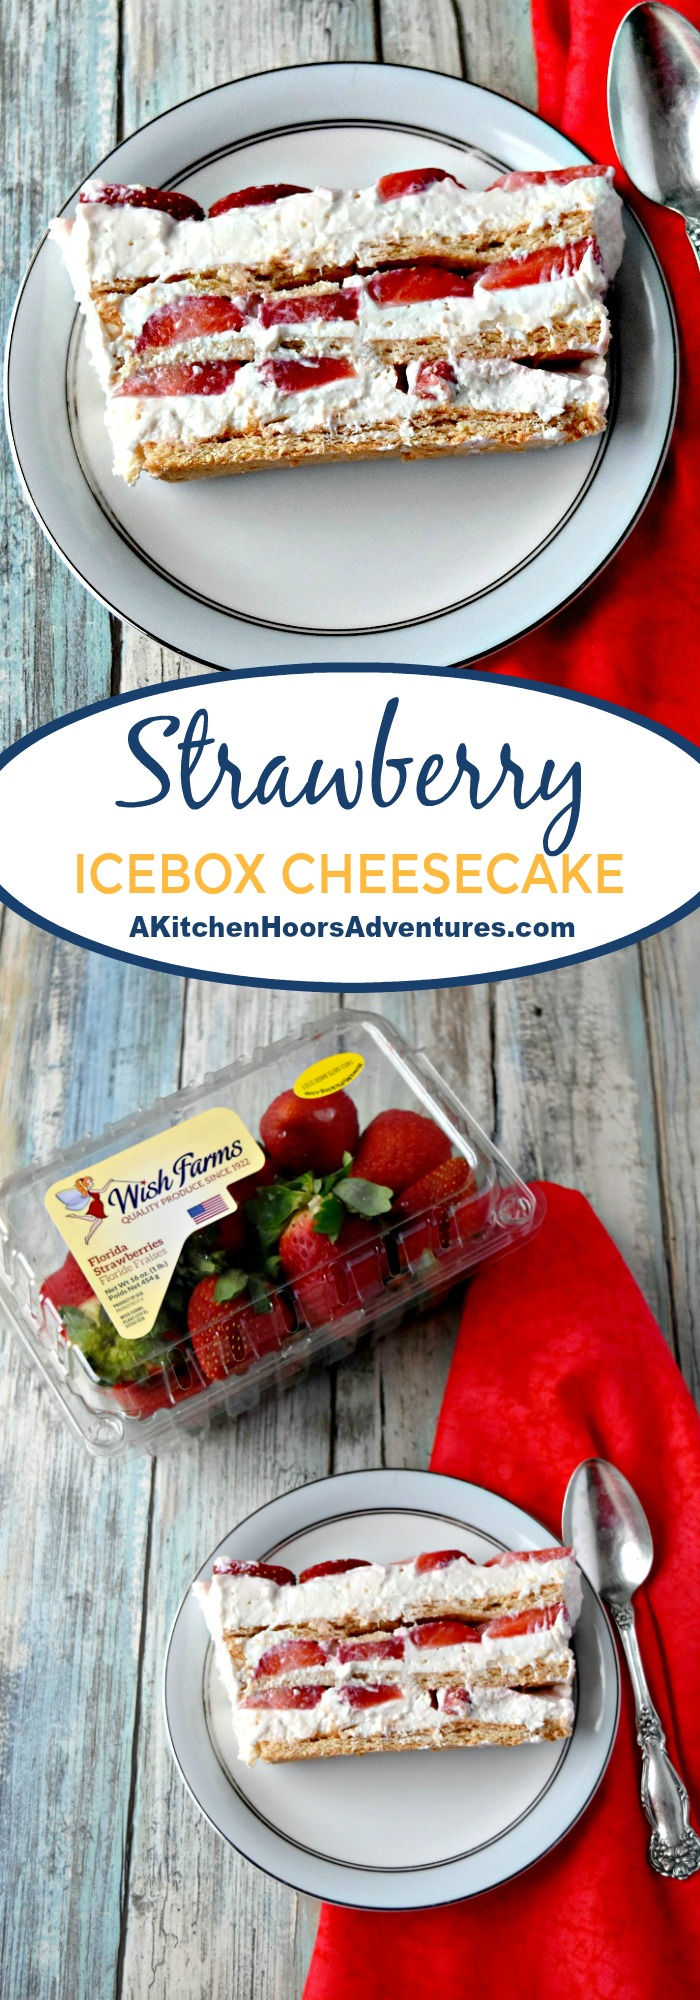 Strawberry Icebox Cheesecake has fresh, sweet strawberries, creamy cheesecake filling, and honey graham cracker layers.  It's the perfect way to showcase in season, Florida strawberries in a simply delicious dessert your family will love. It's a new comfort food to get you through winter! #SundaySupper